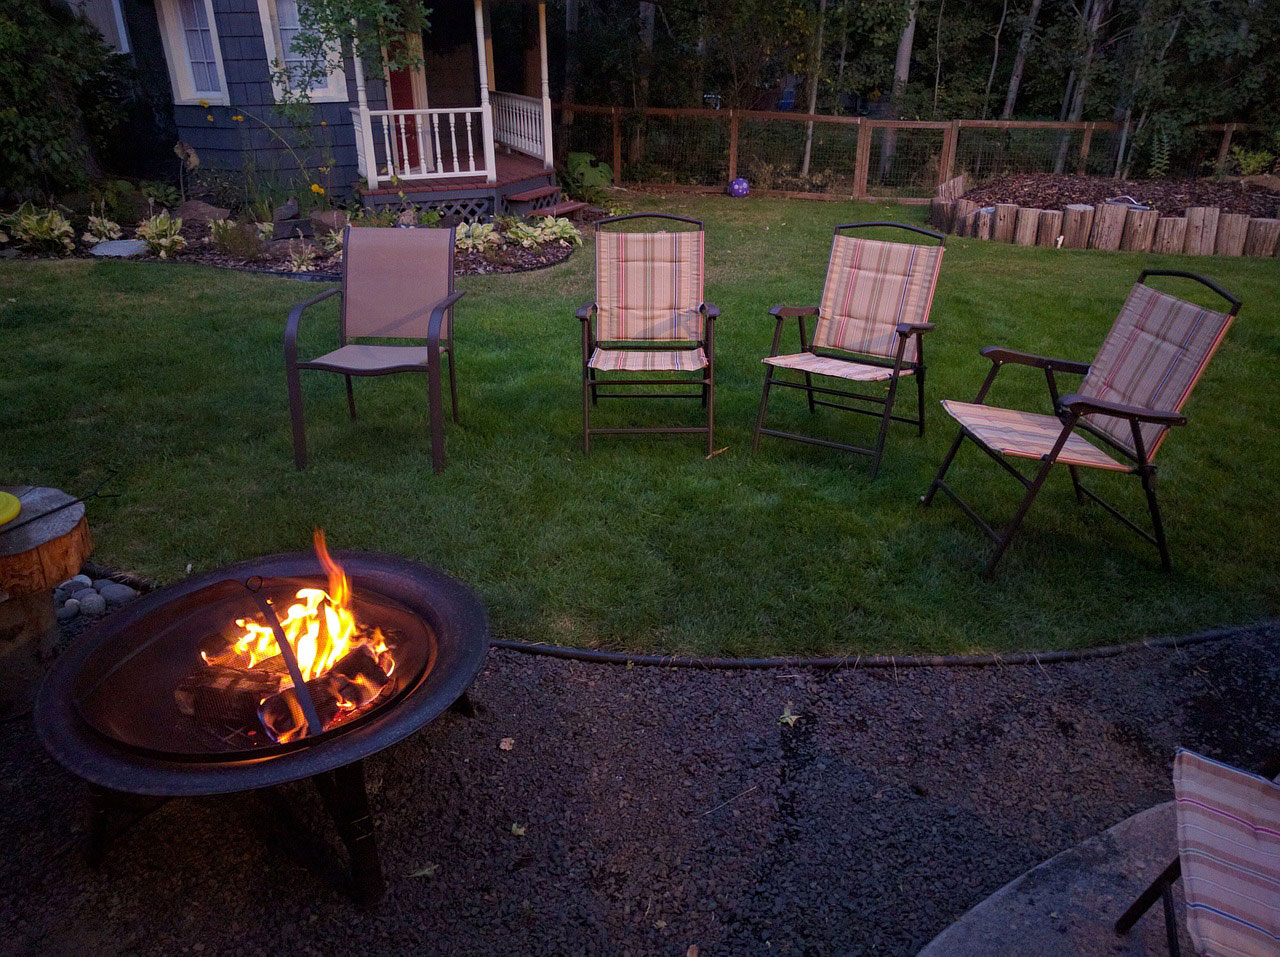 Upgrade your backyard in Berkshire - Create space to enjoy the outdoors and socially distance.